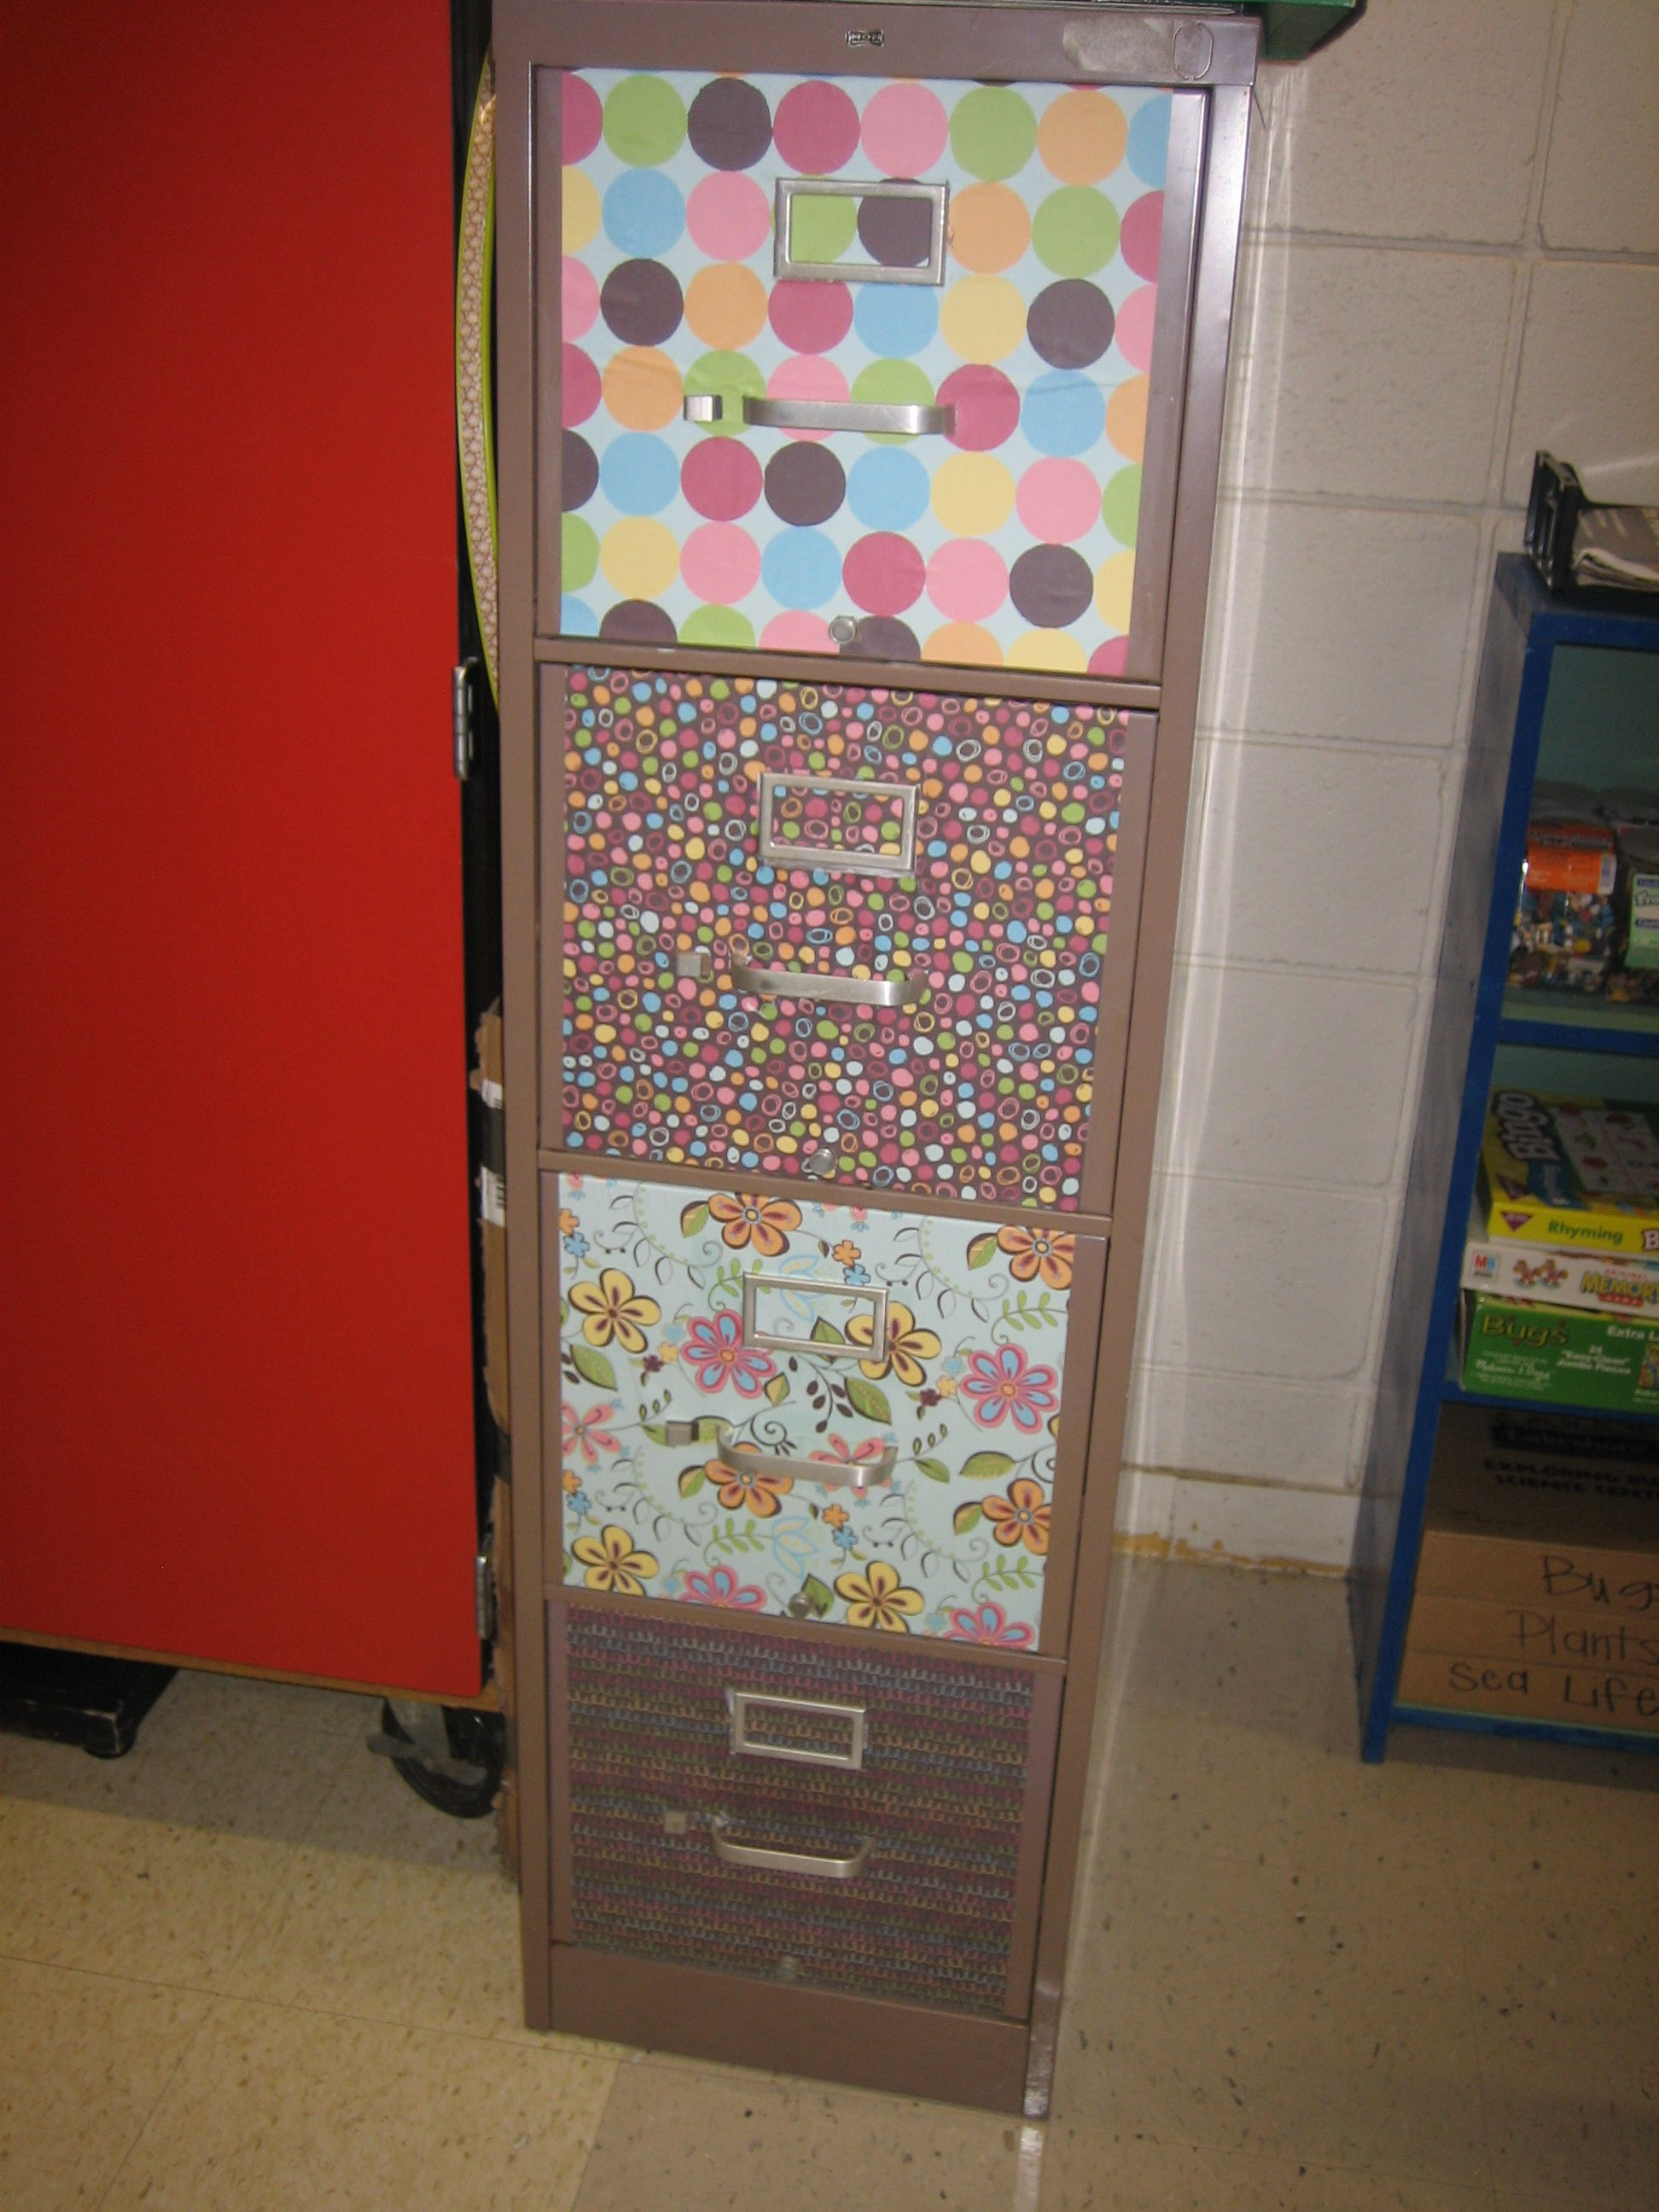 How to make scrapbook look good - Scrapbook Paper And Modge Podge I Love This For Making The Classroom Look More Homey